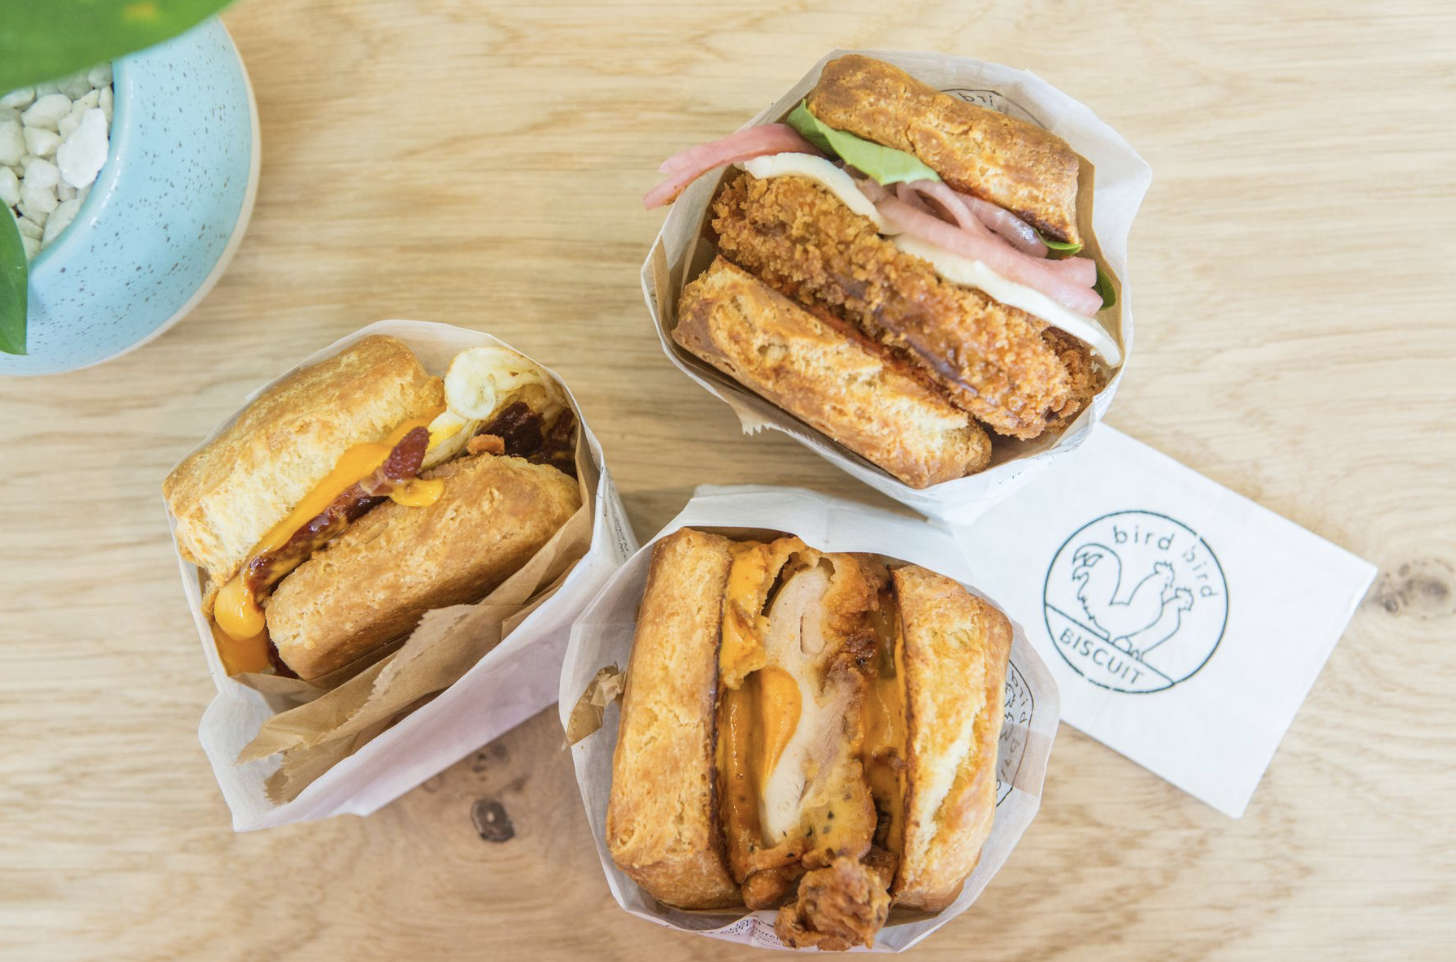 Eater Austin  The Early Word on Morning Sandwich Shop Bird Bird Biscuit